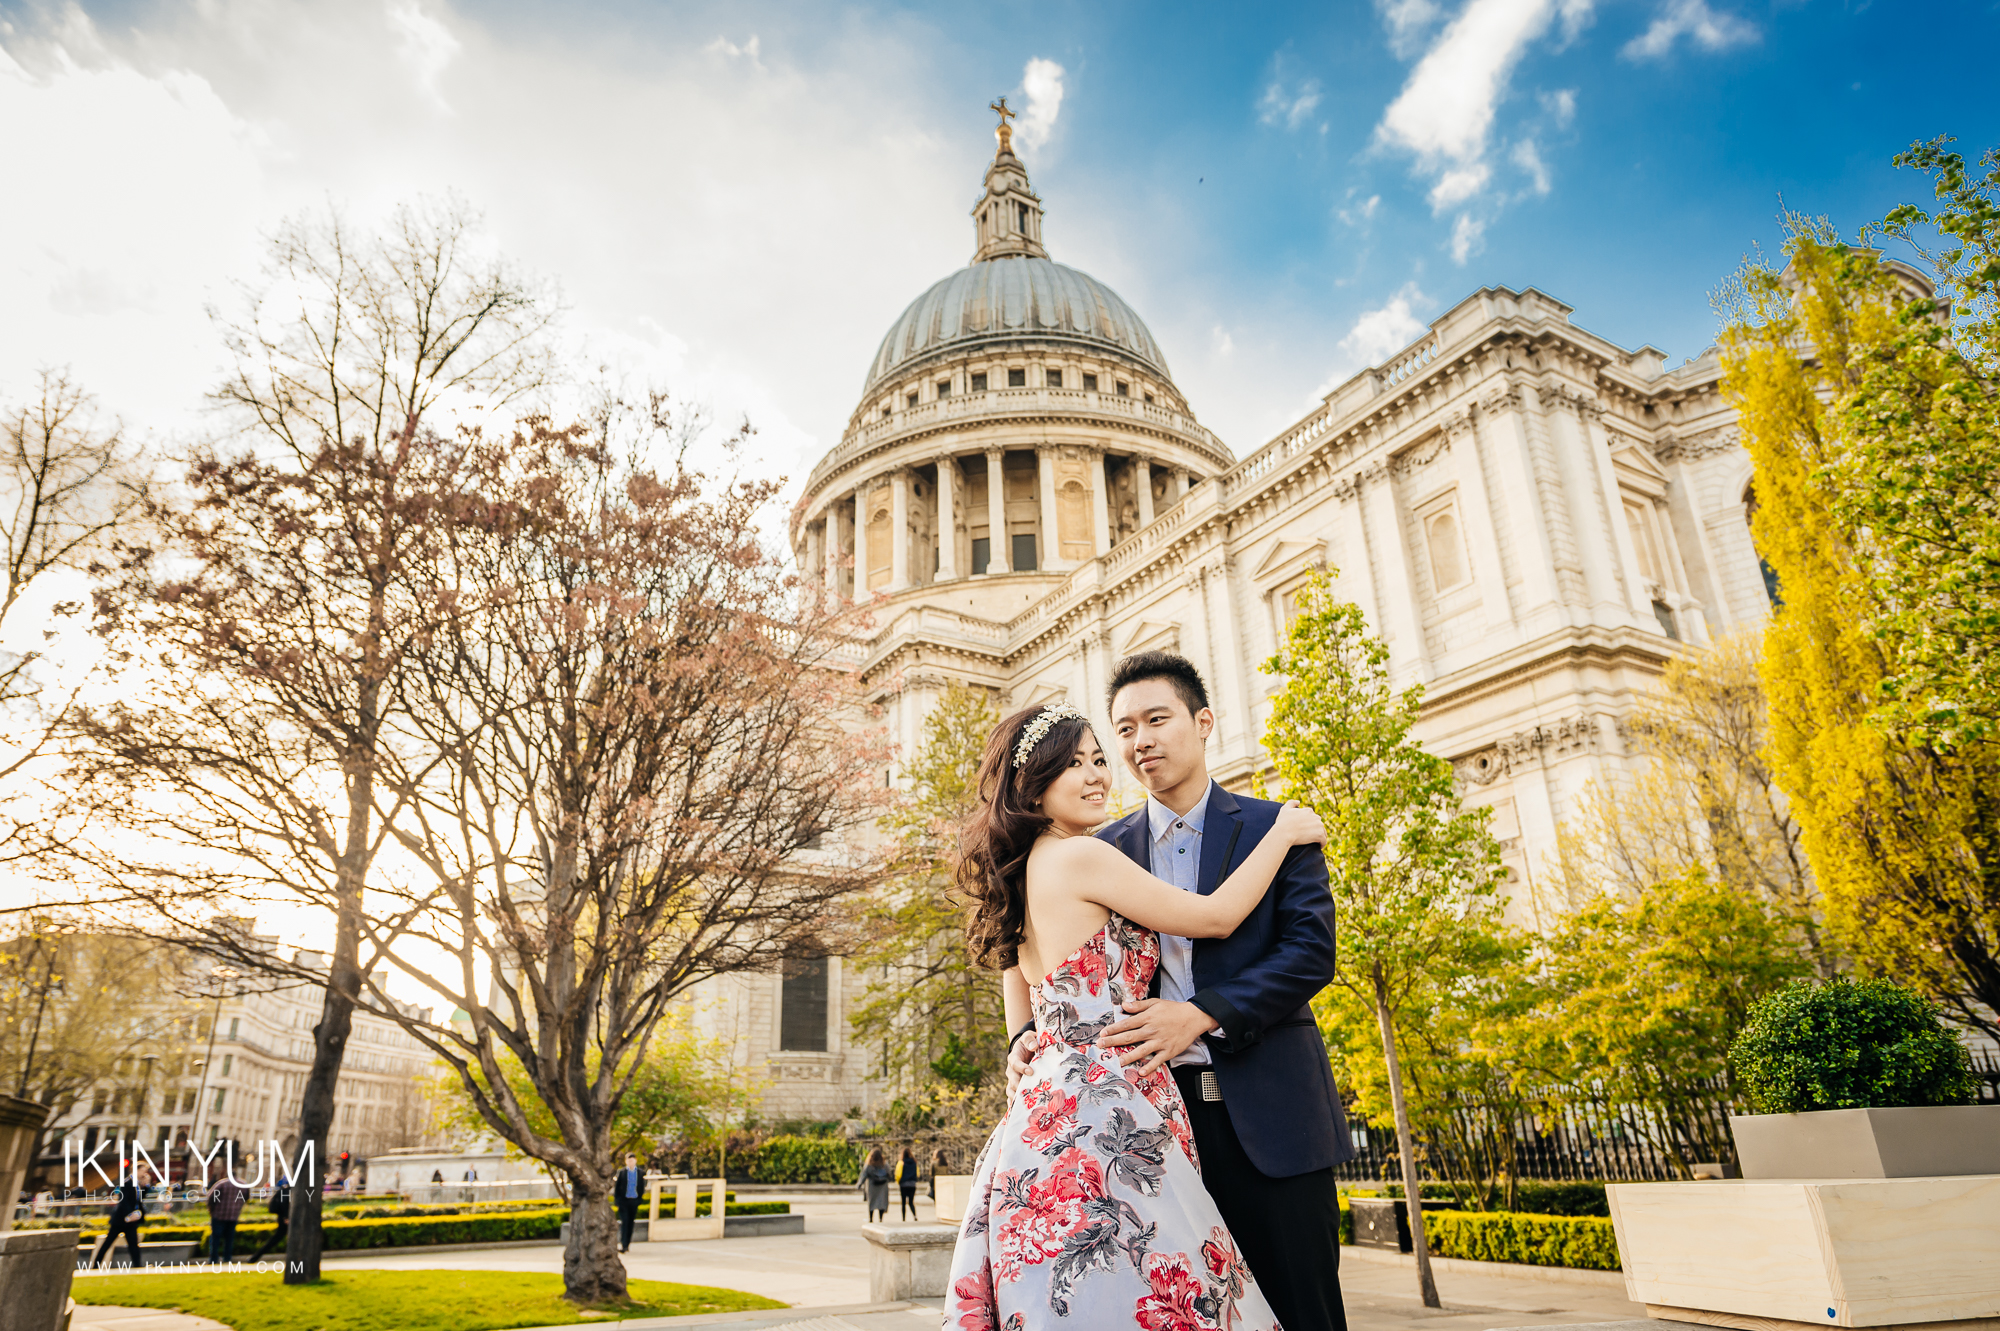 Pre-Wedding Shoot London Susan + Alvin - Ikin Yum Photography-012.jpg